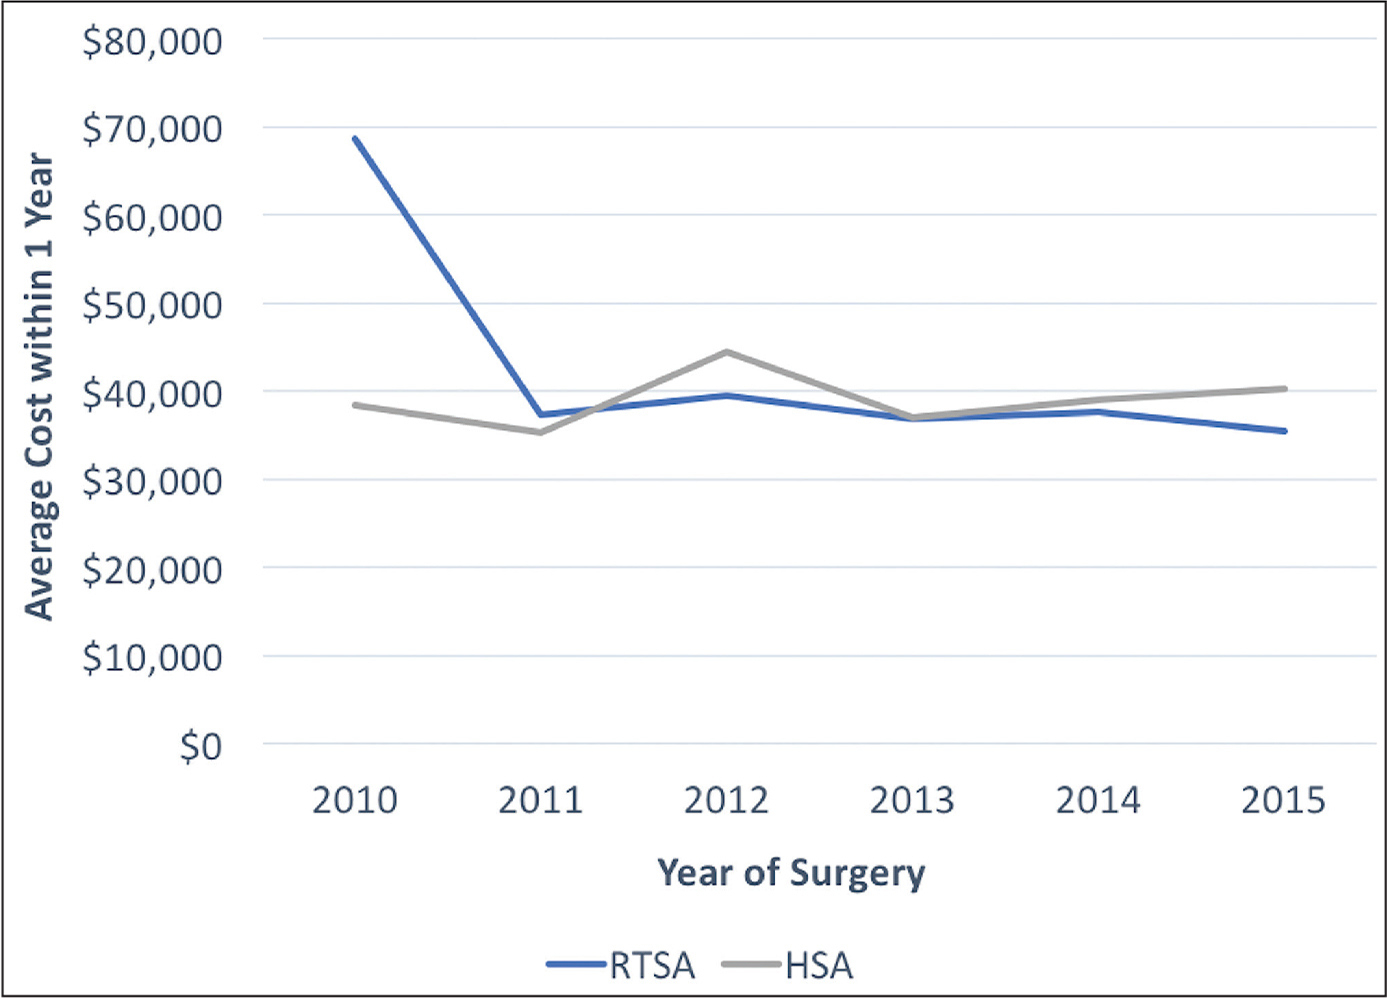 Average total cost within 1 year of reverse total shoulder arthroplasty (RTSA) vs matched hemiarthroplasty (HSA) in 2010 to the first quarter of 2015.